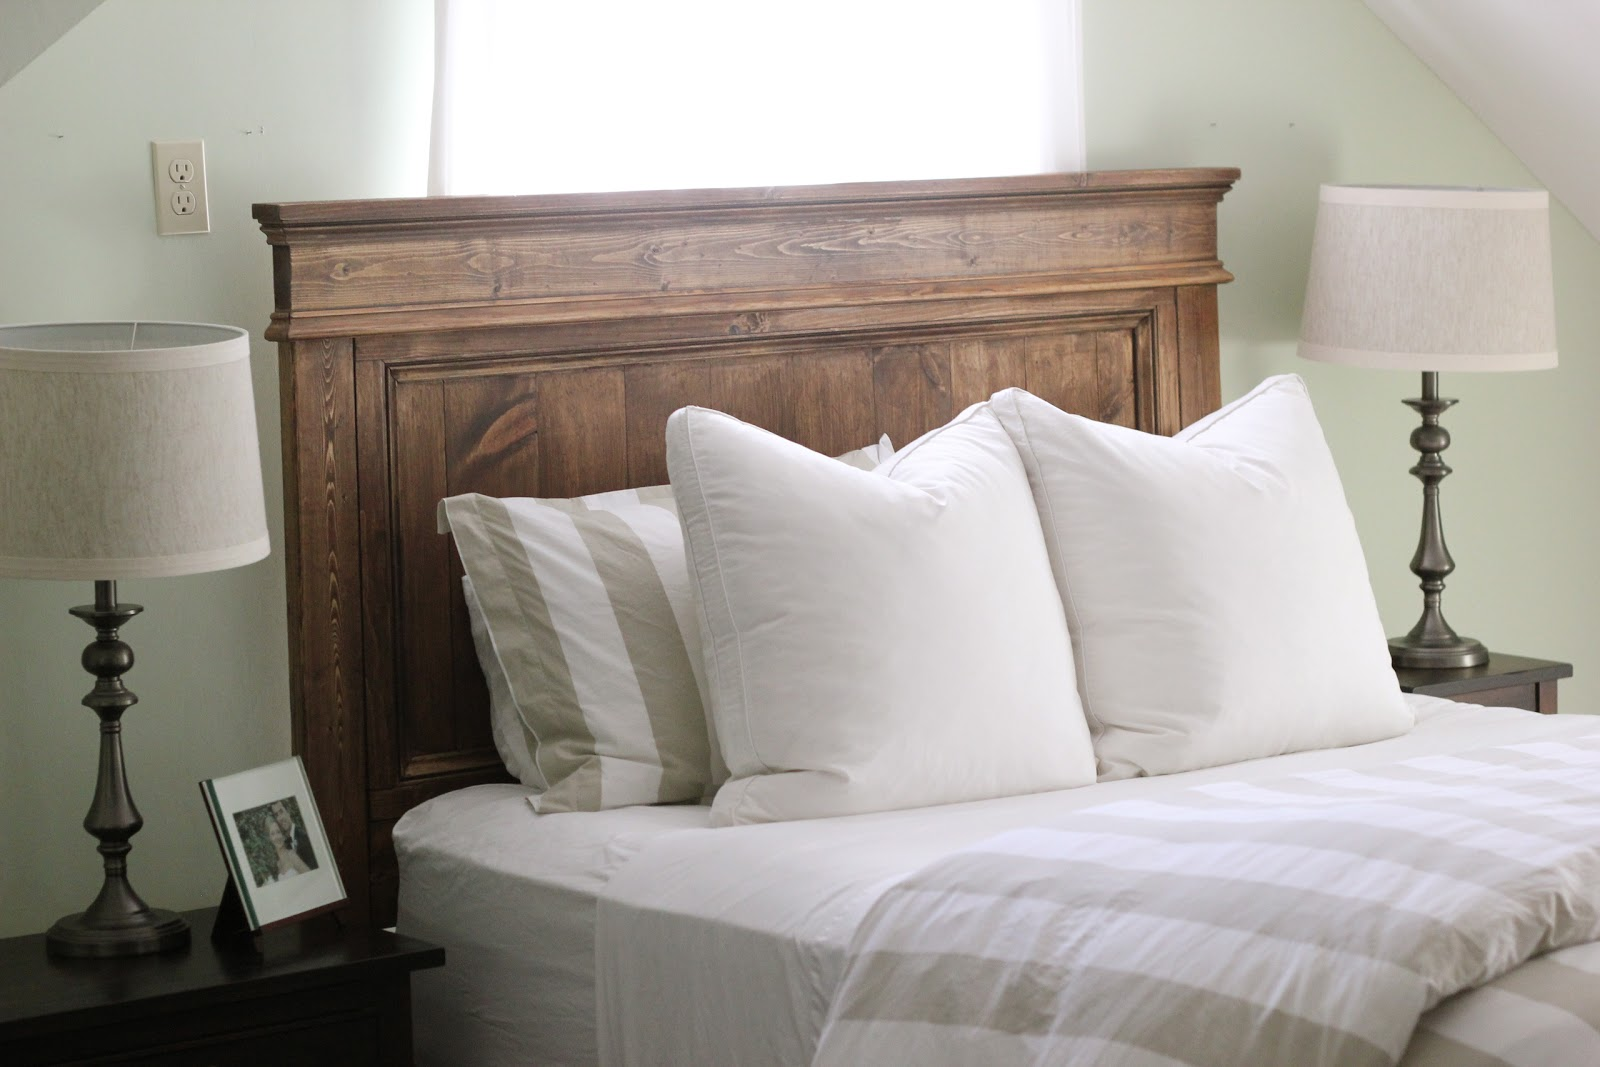 Jenny steffens hobick we built a bed diy wooden headboard for Simple bed diy